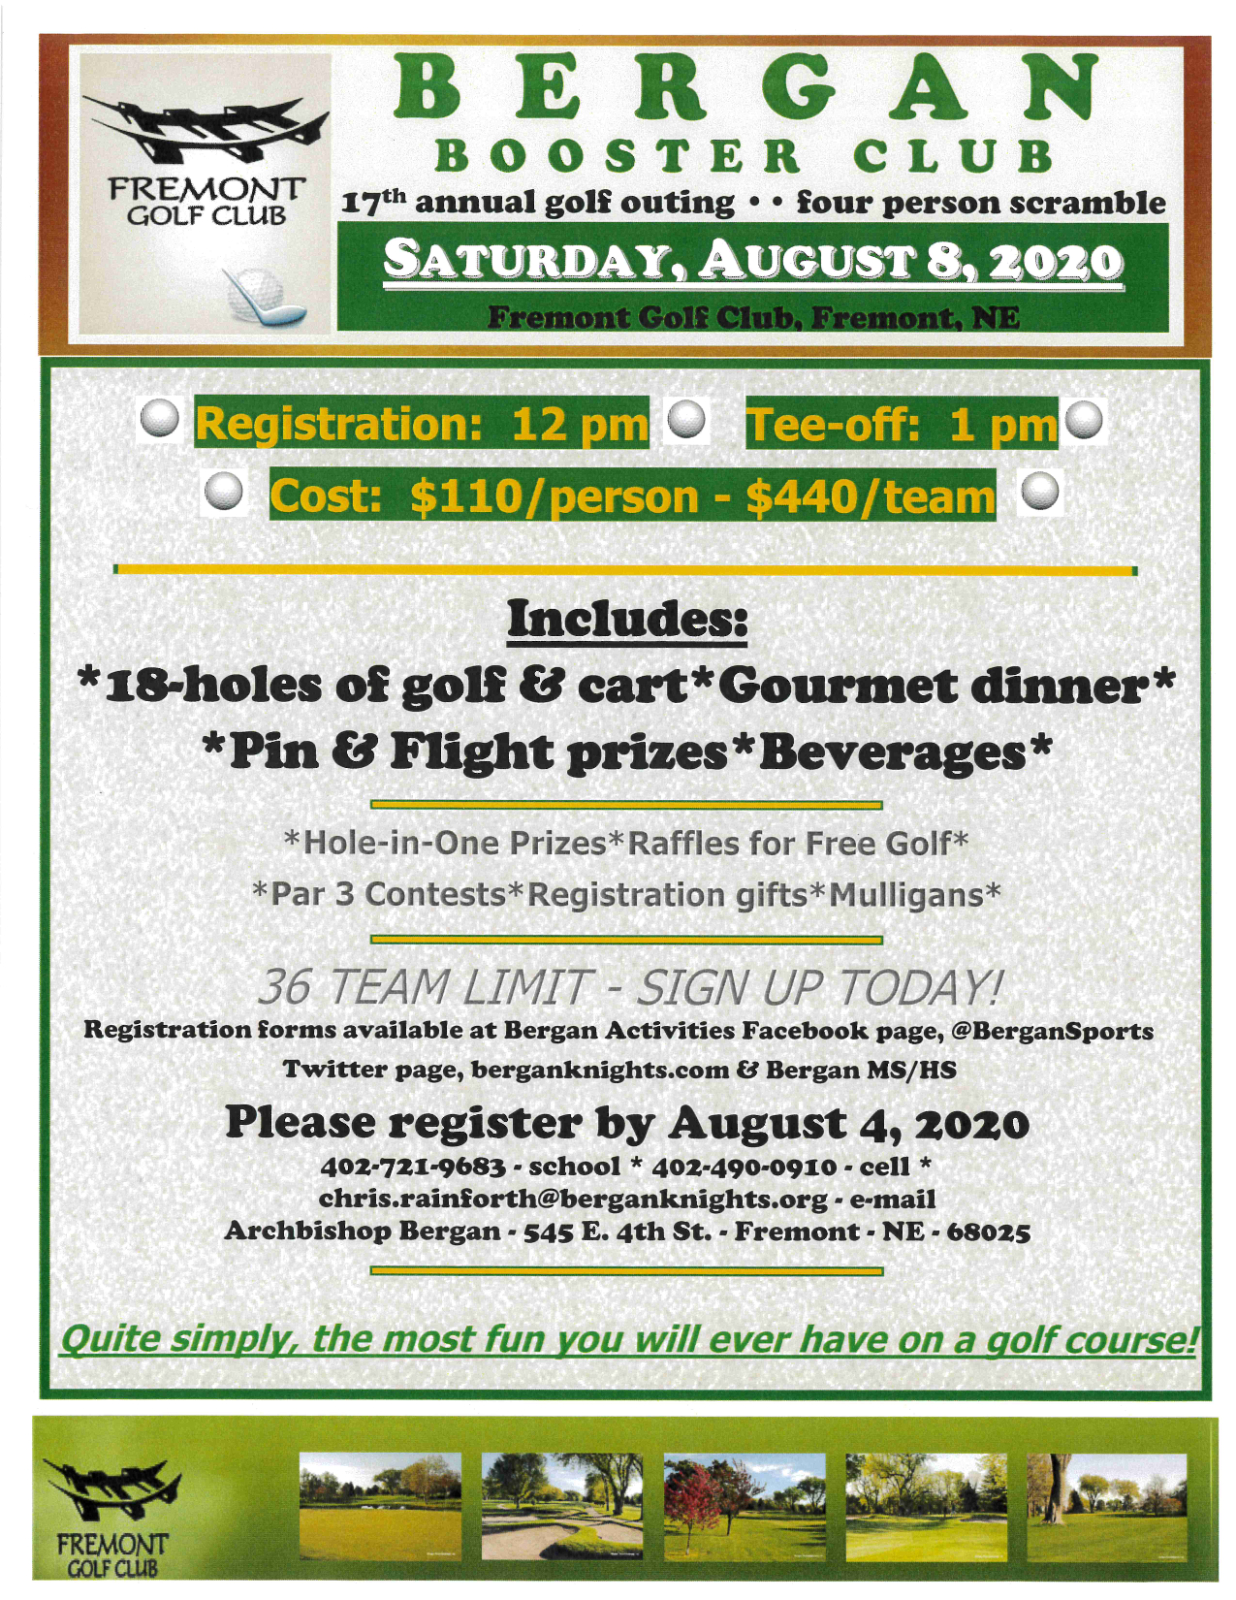 2020 Bergan Booster Club Golf Tournament